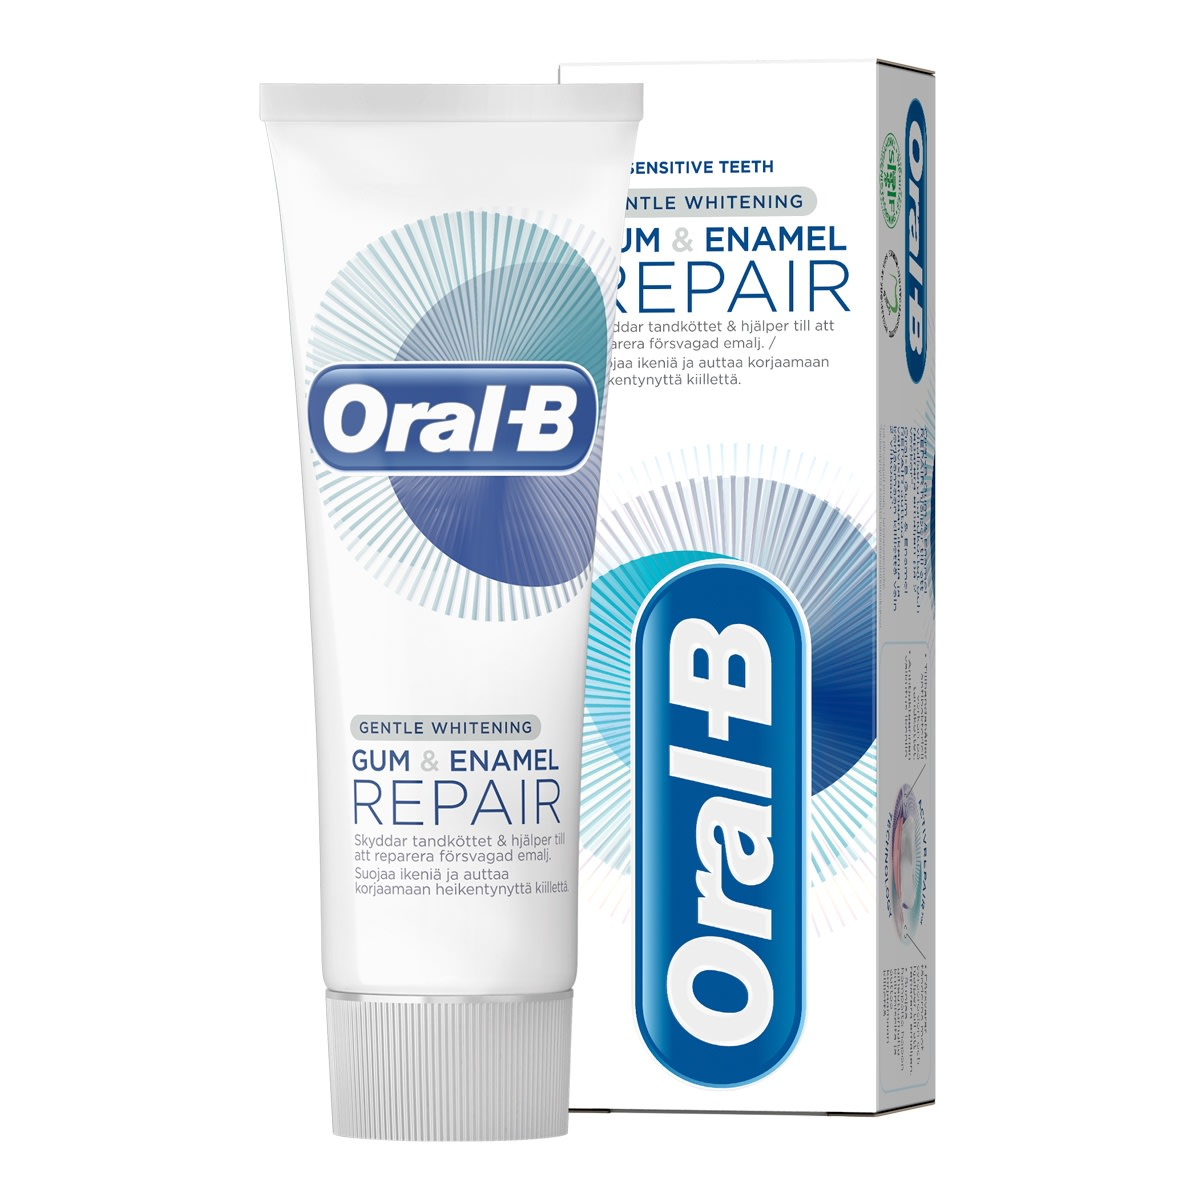 Oral-B Gum & Enamel Repair Gentle Whitening -hammastahna